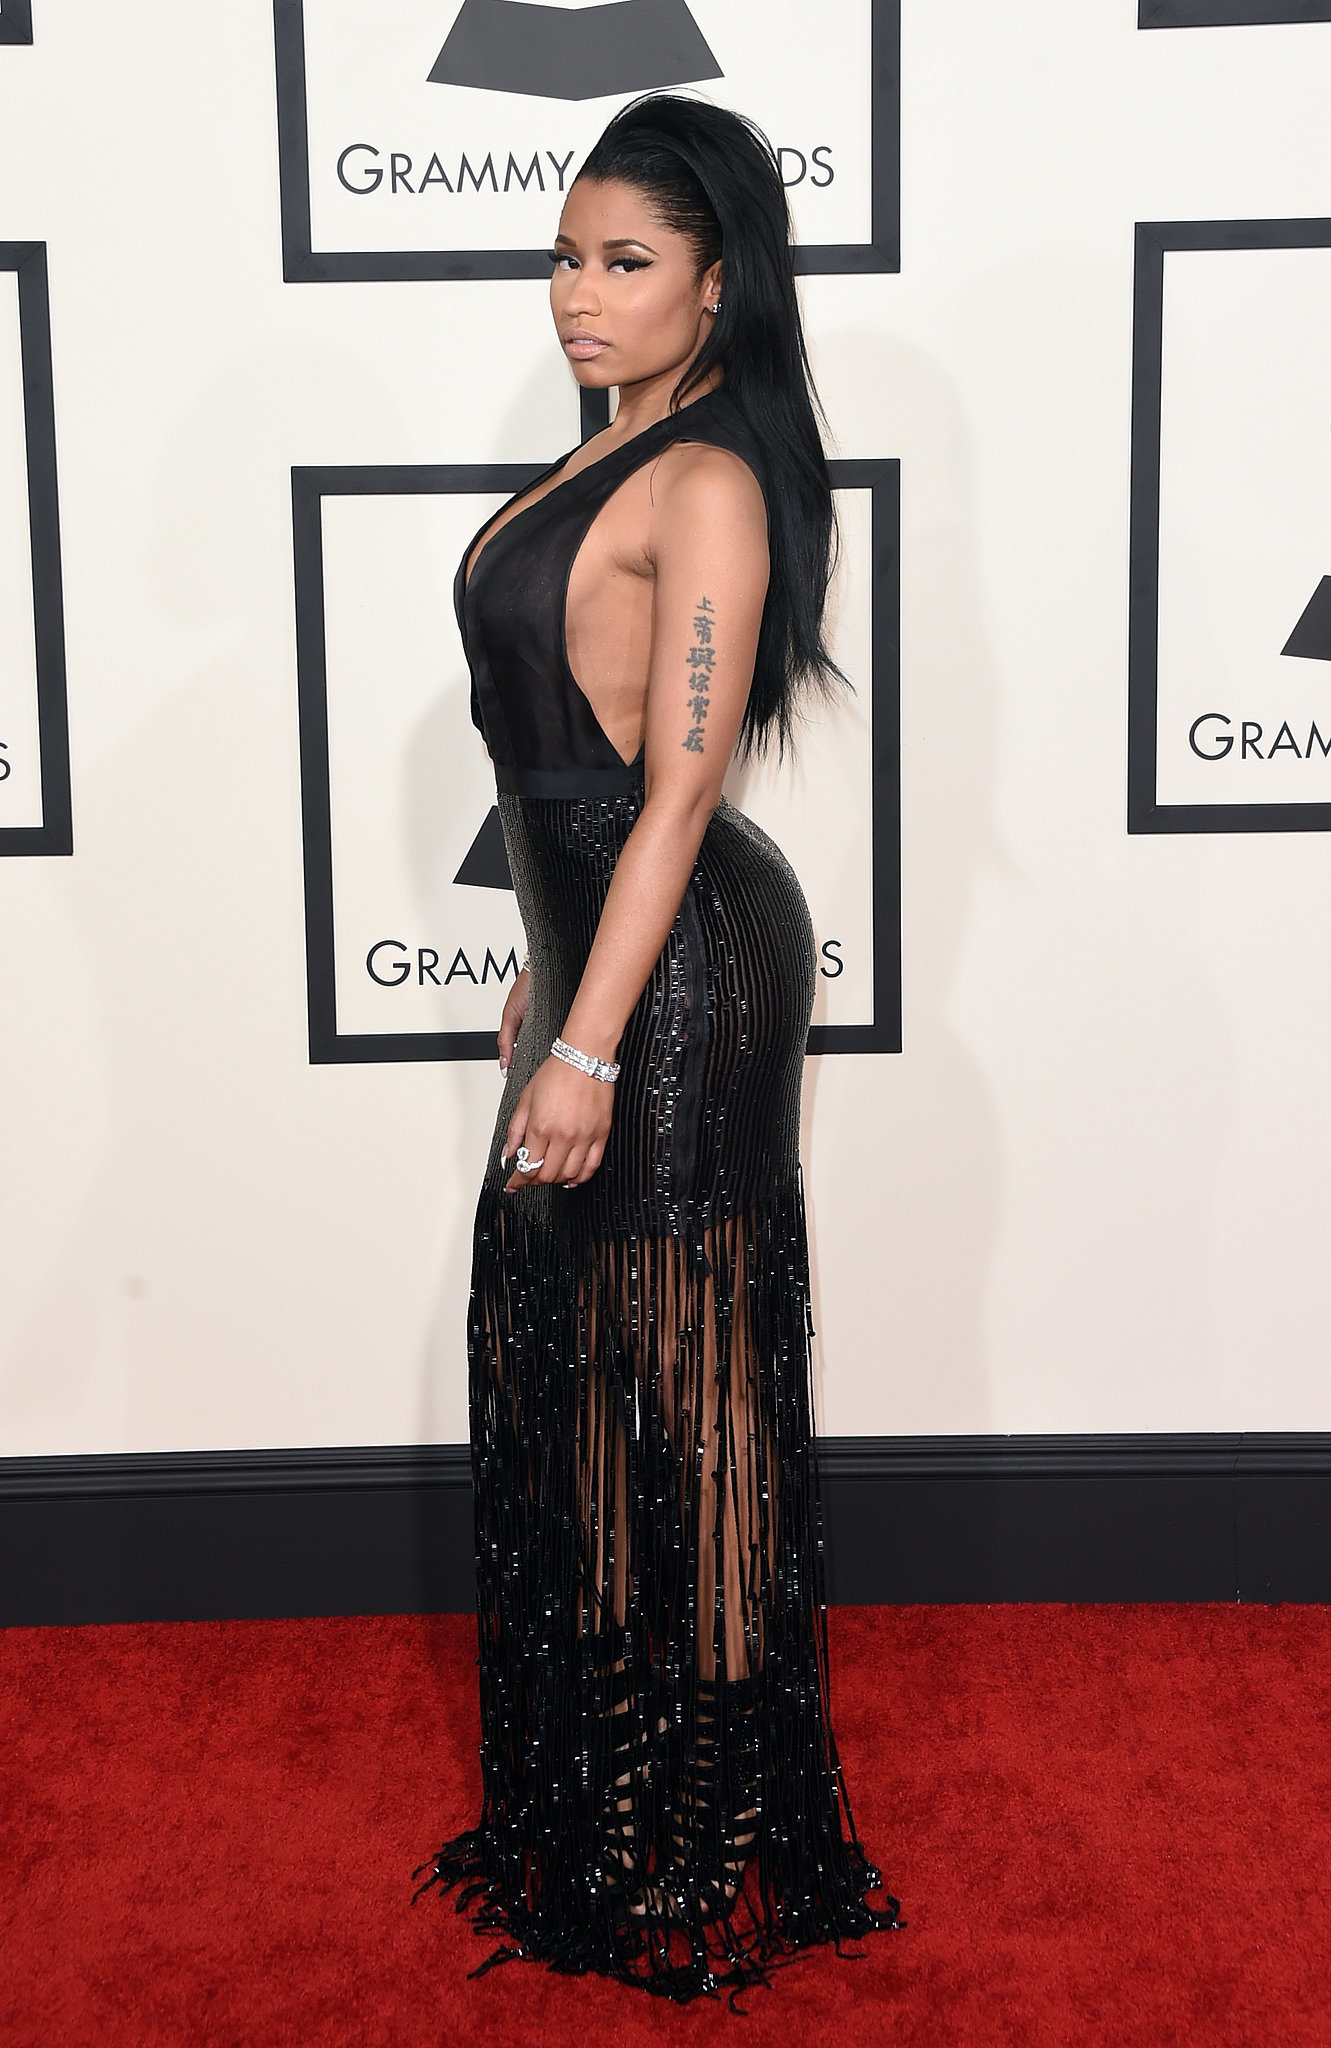 Nicki Minaj 39 S Dress At The Grammy Awards 2015 Popsugar Fashion